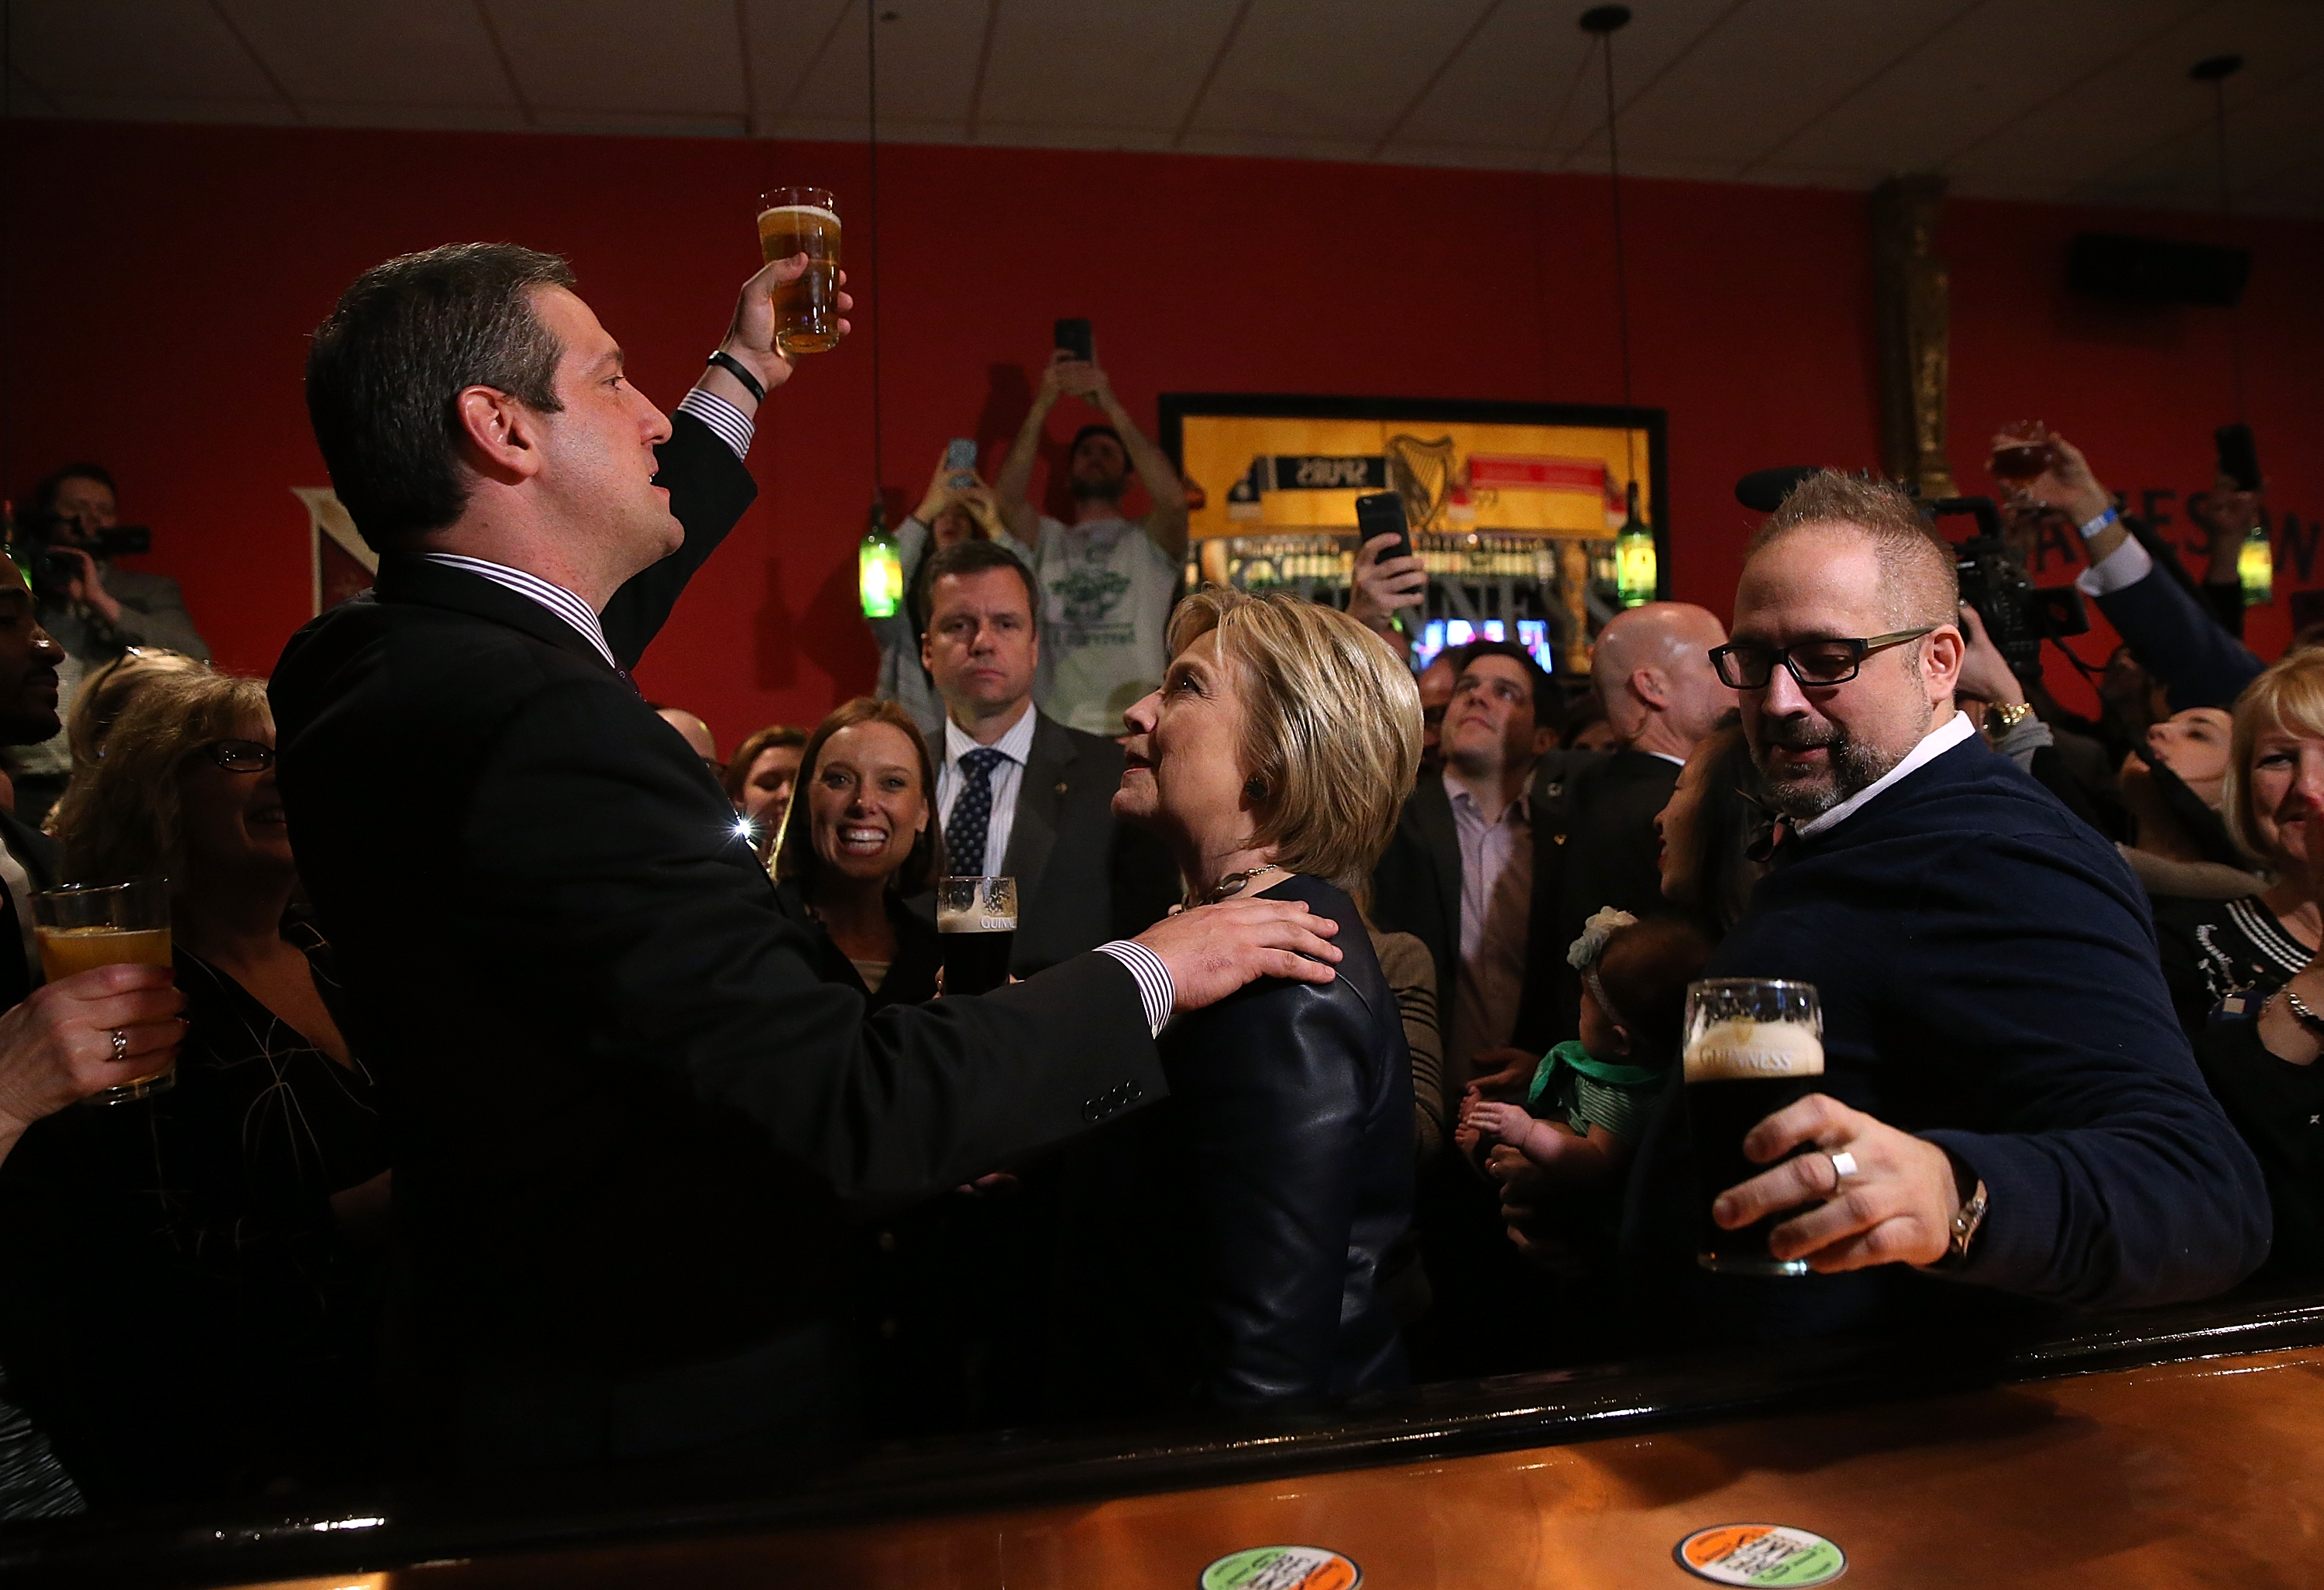 Rep Tim Ryan toasts former Secretary of State and Democratic presidential candidate Hillary Clinton has a Guiness beer at O'Donold's Irish Pub and Grill on March 12, 2016 in Youngstown, Ohio. (Photo by Justin Sullivan/Getty Images)